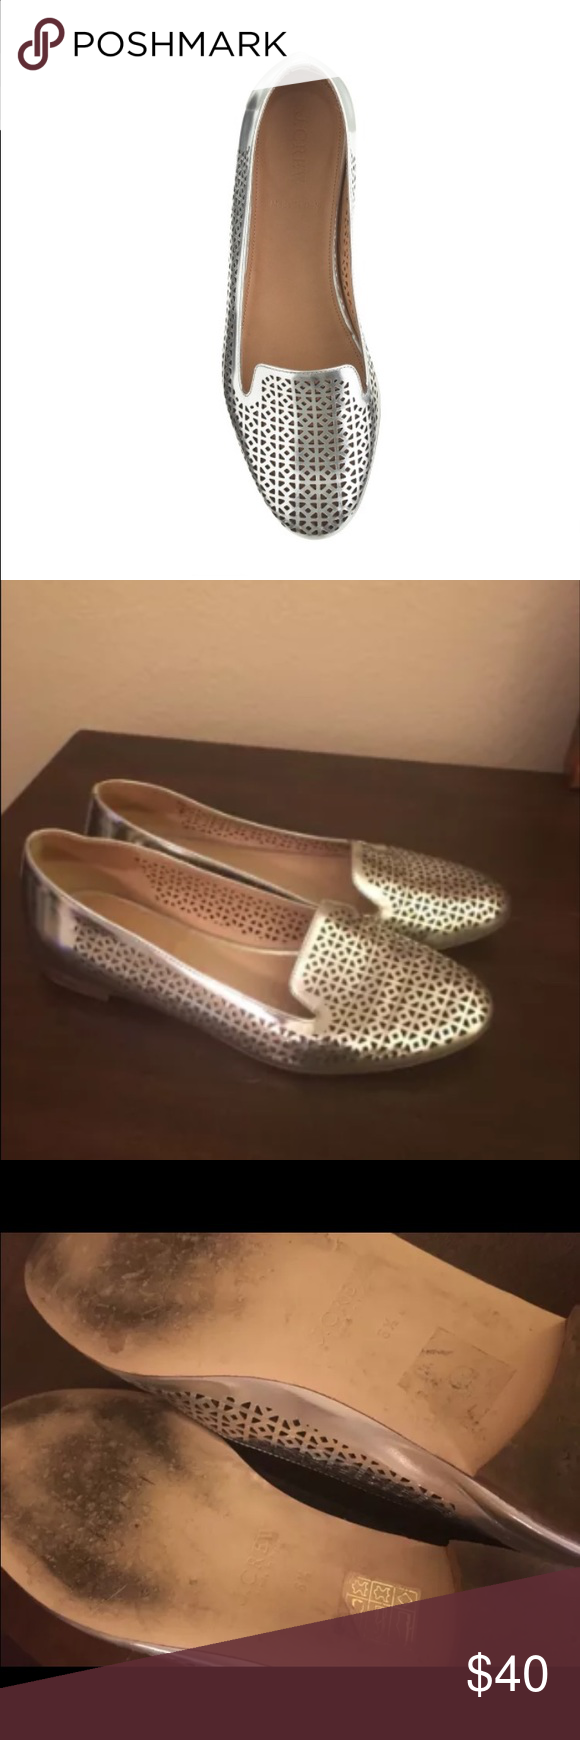 Cleo perforated mirror metallic loafer J. CREW Cleo perforated mirror metallic leather loafers, worn a couple of times, great condition! Size 6.5, silver color Metallic leather upper Leather lining Made in Italy. J. Crew Shoes Flats & Loafers